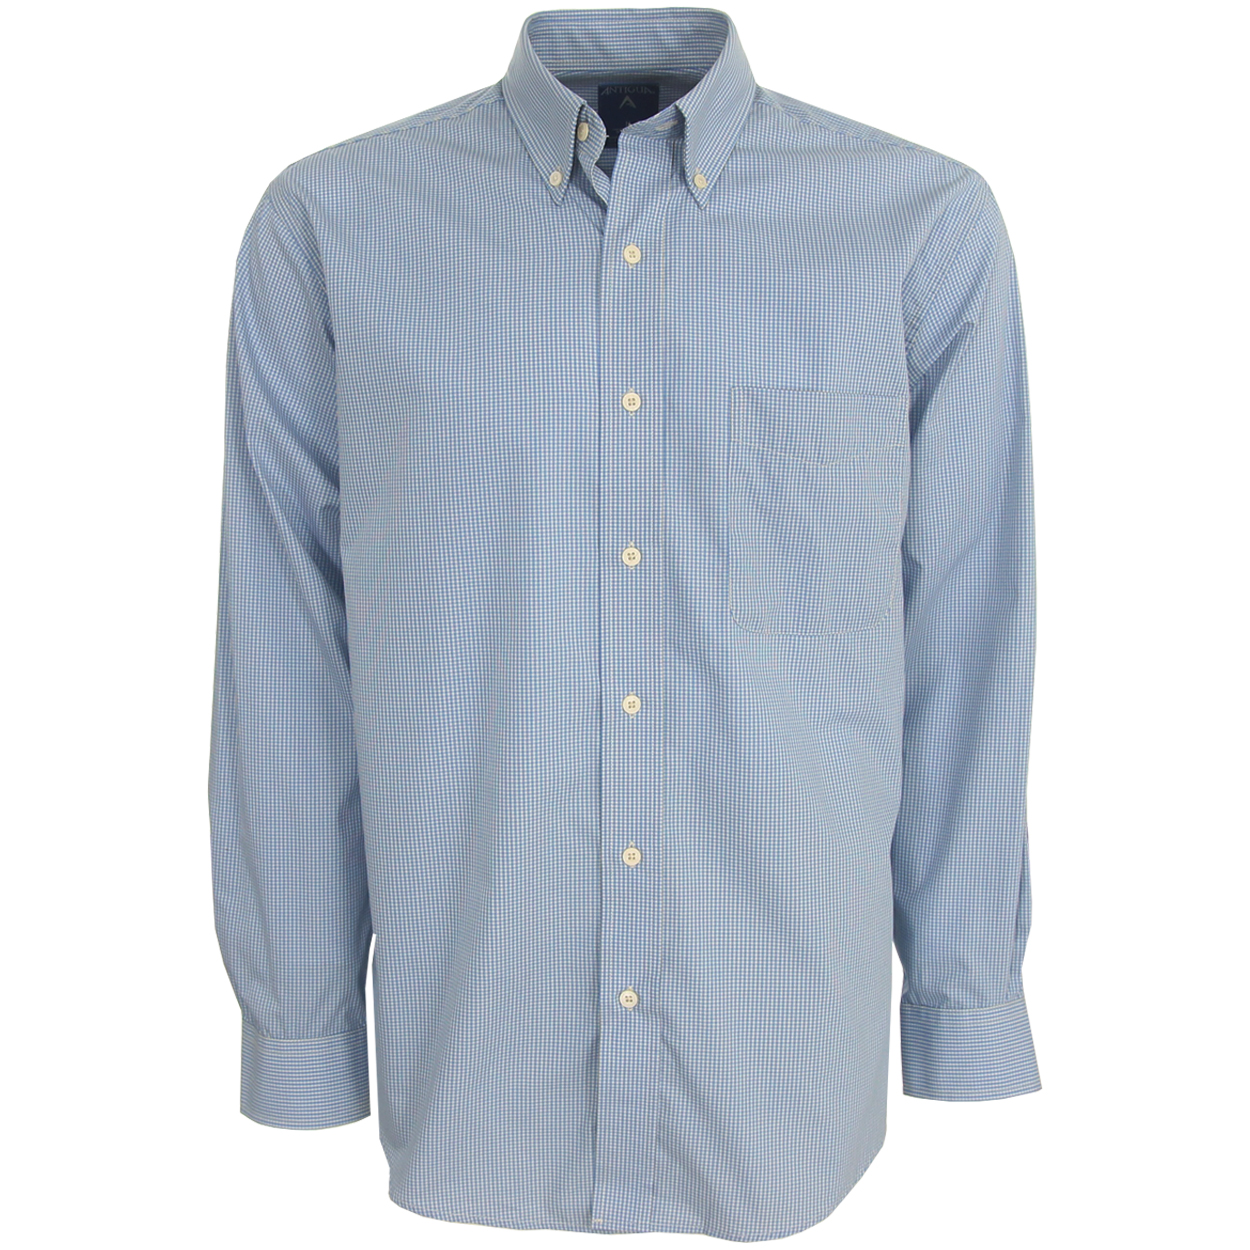 Find great deals on eBay for womens oxford shirts. Shop with confidence.